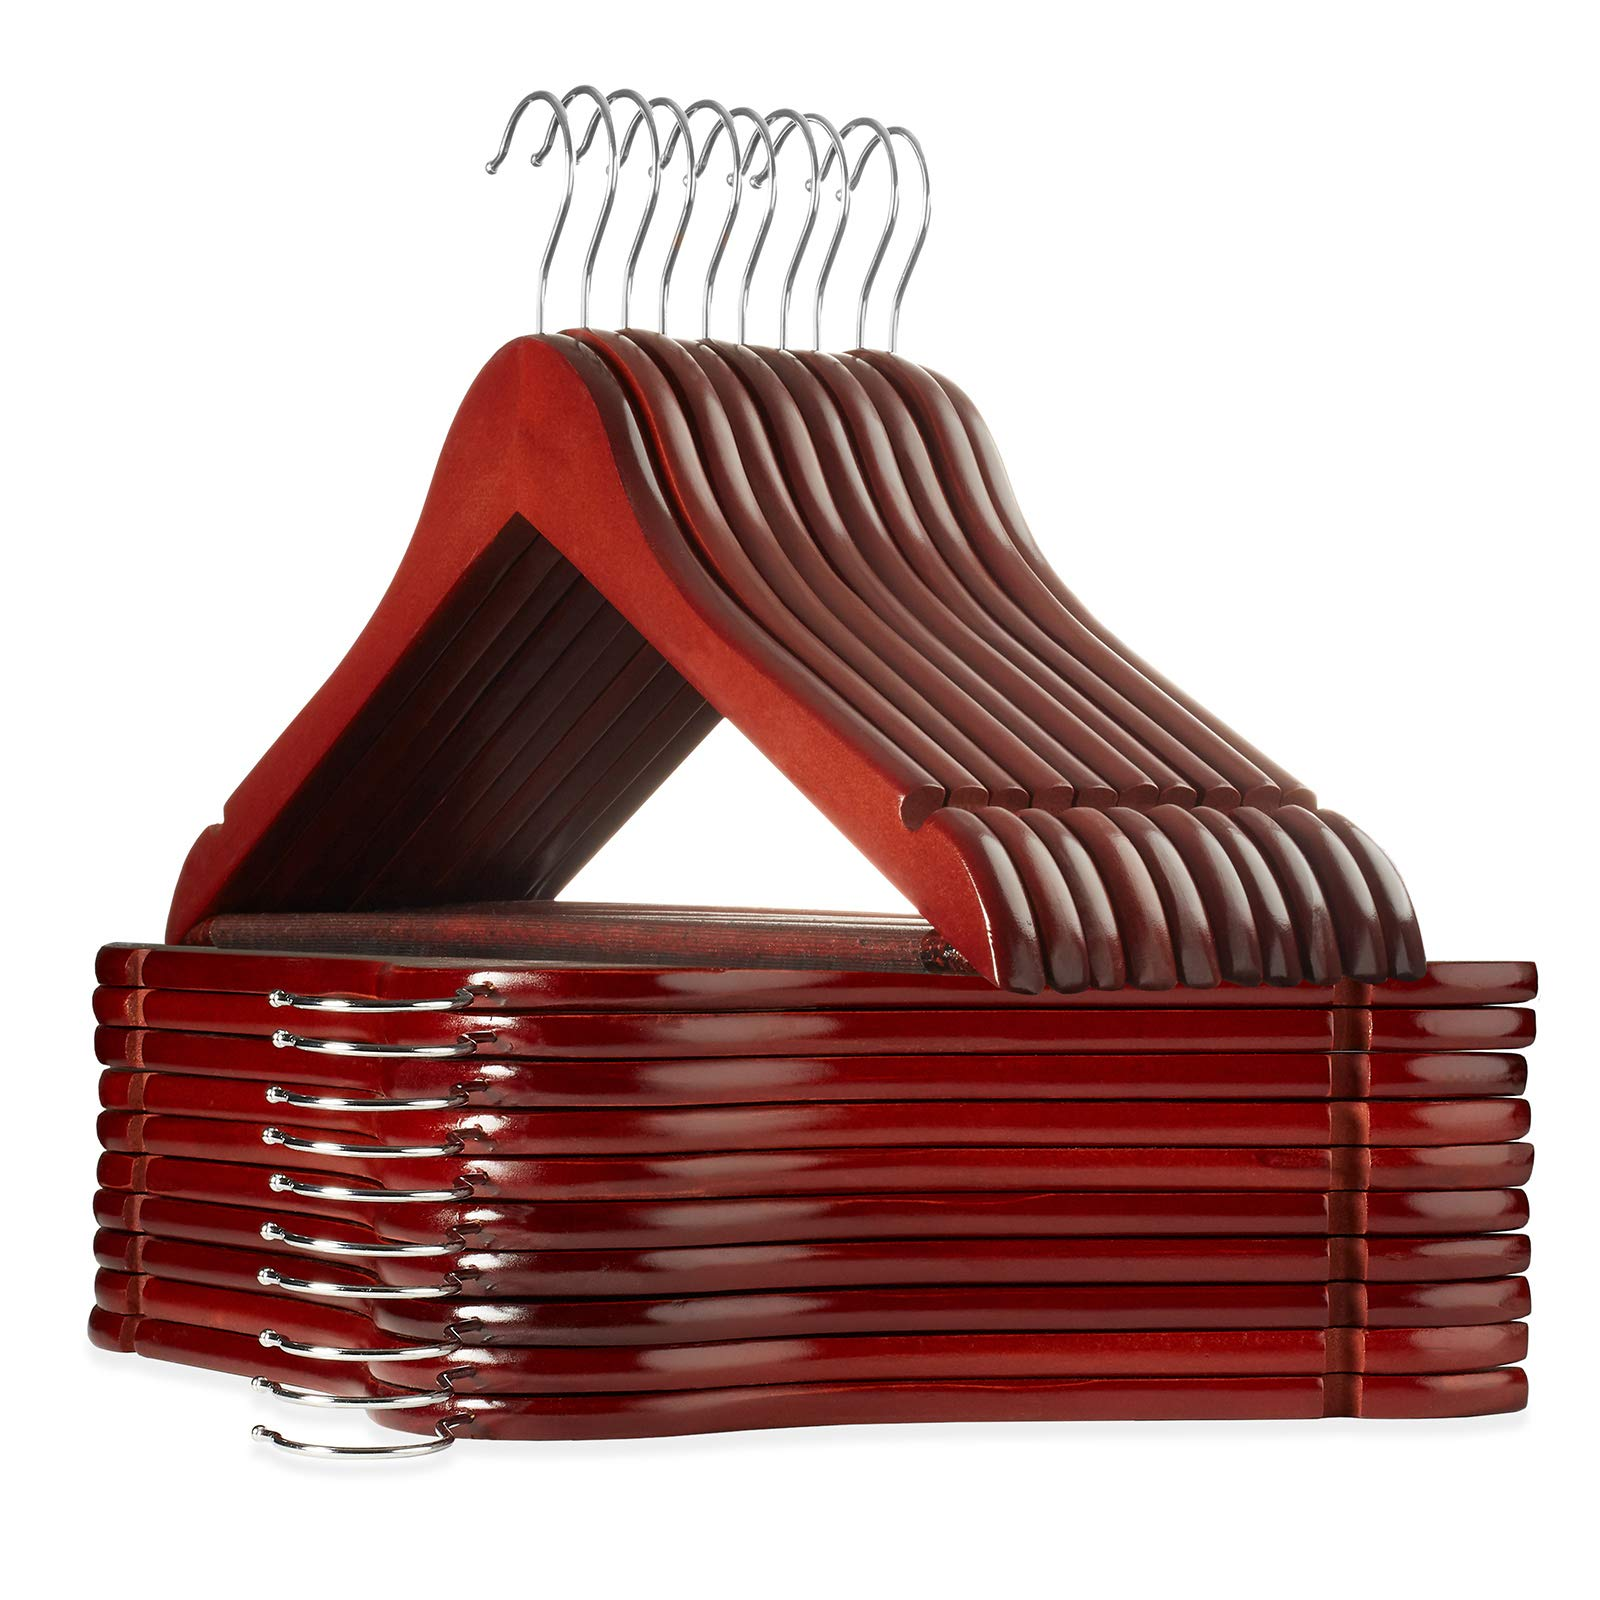 Casafield - 20 Cherry Wooden Suit Hangers - Premium Lotus Wood with Notches & Chrome Swivel Hook for Dress Clothes, Coats, Jackets, Pants, Shirts, Skirts